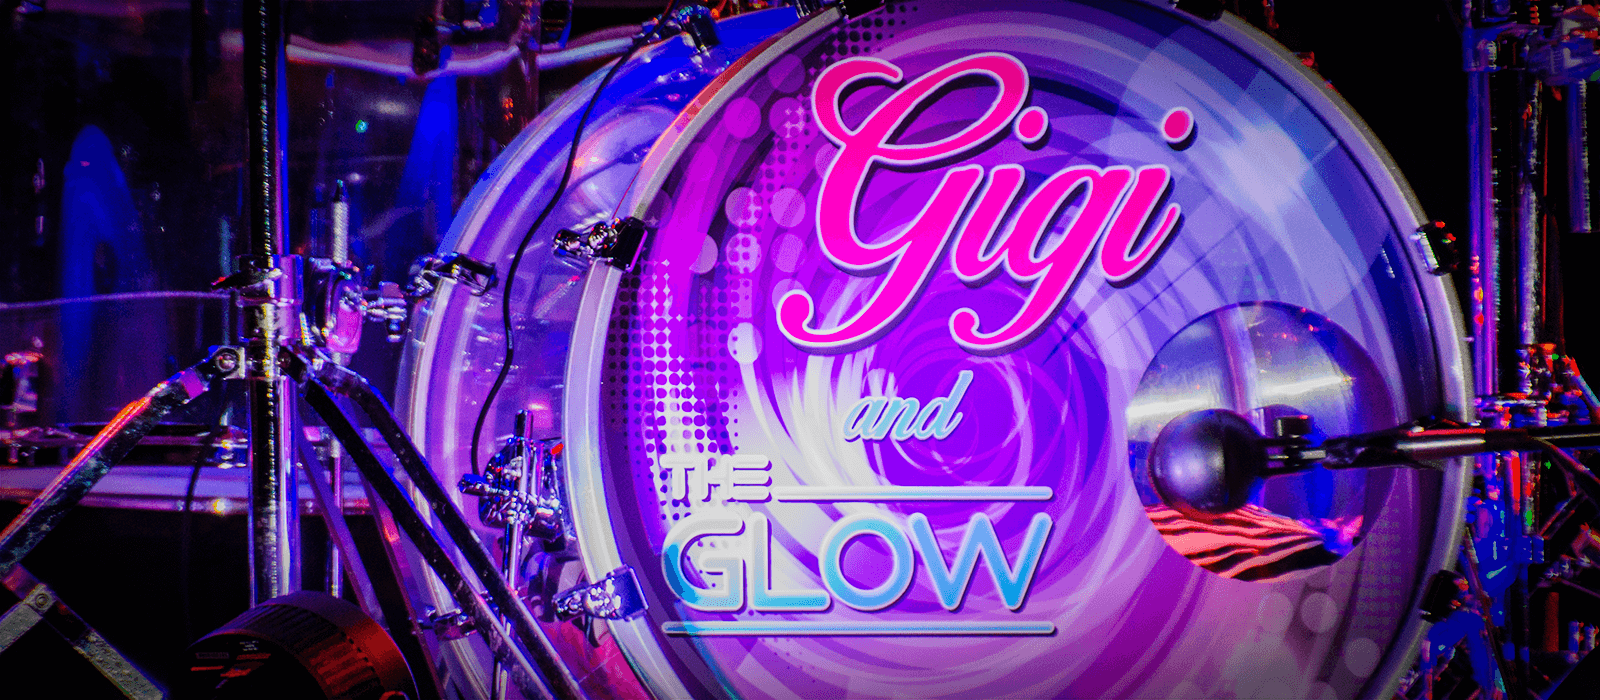 Contact Gigi and the GLOW cover band